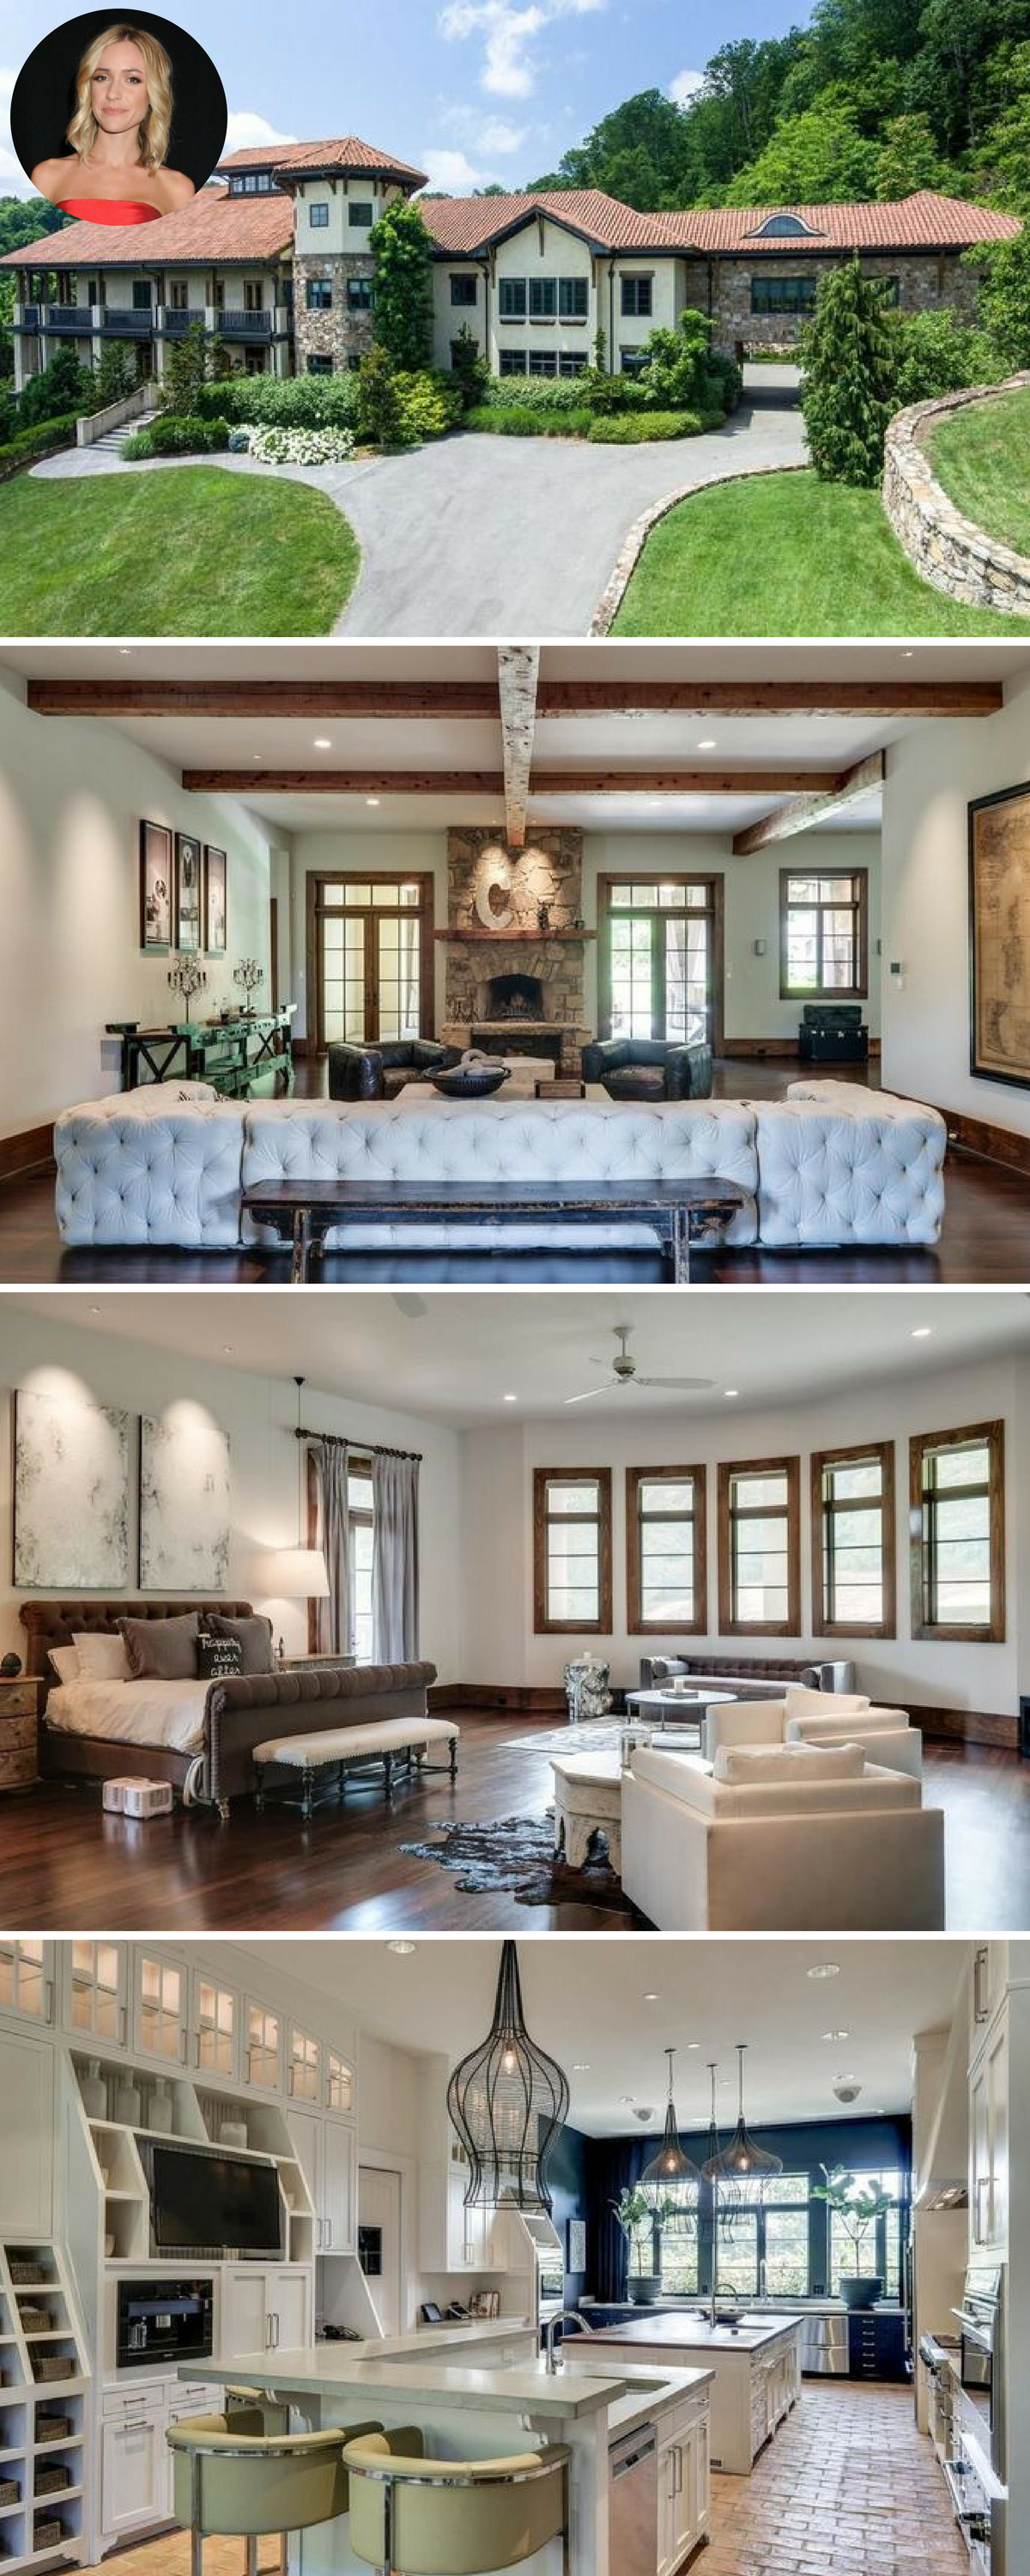 Kristin Cavallari And Jay Cutler Selling 7 9m Nashville Home Featured In Upcoming Reality Show Celebrity Houses Celebrity Houses Interior Kristin Cavallari